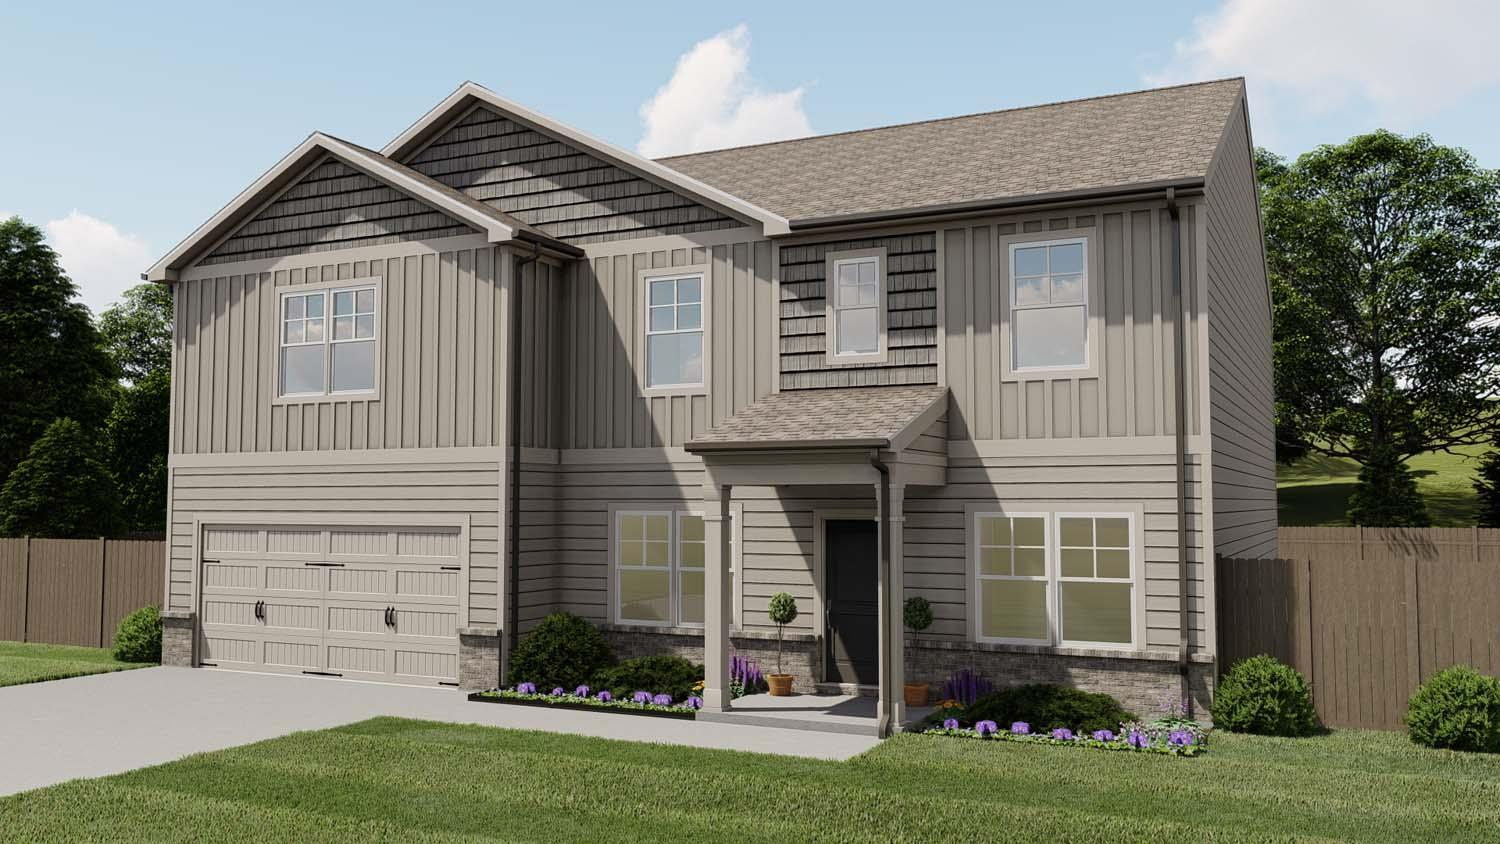 The Richmond by Chafin Communities